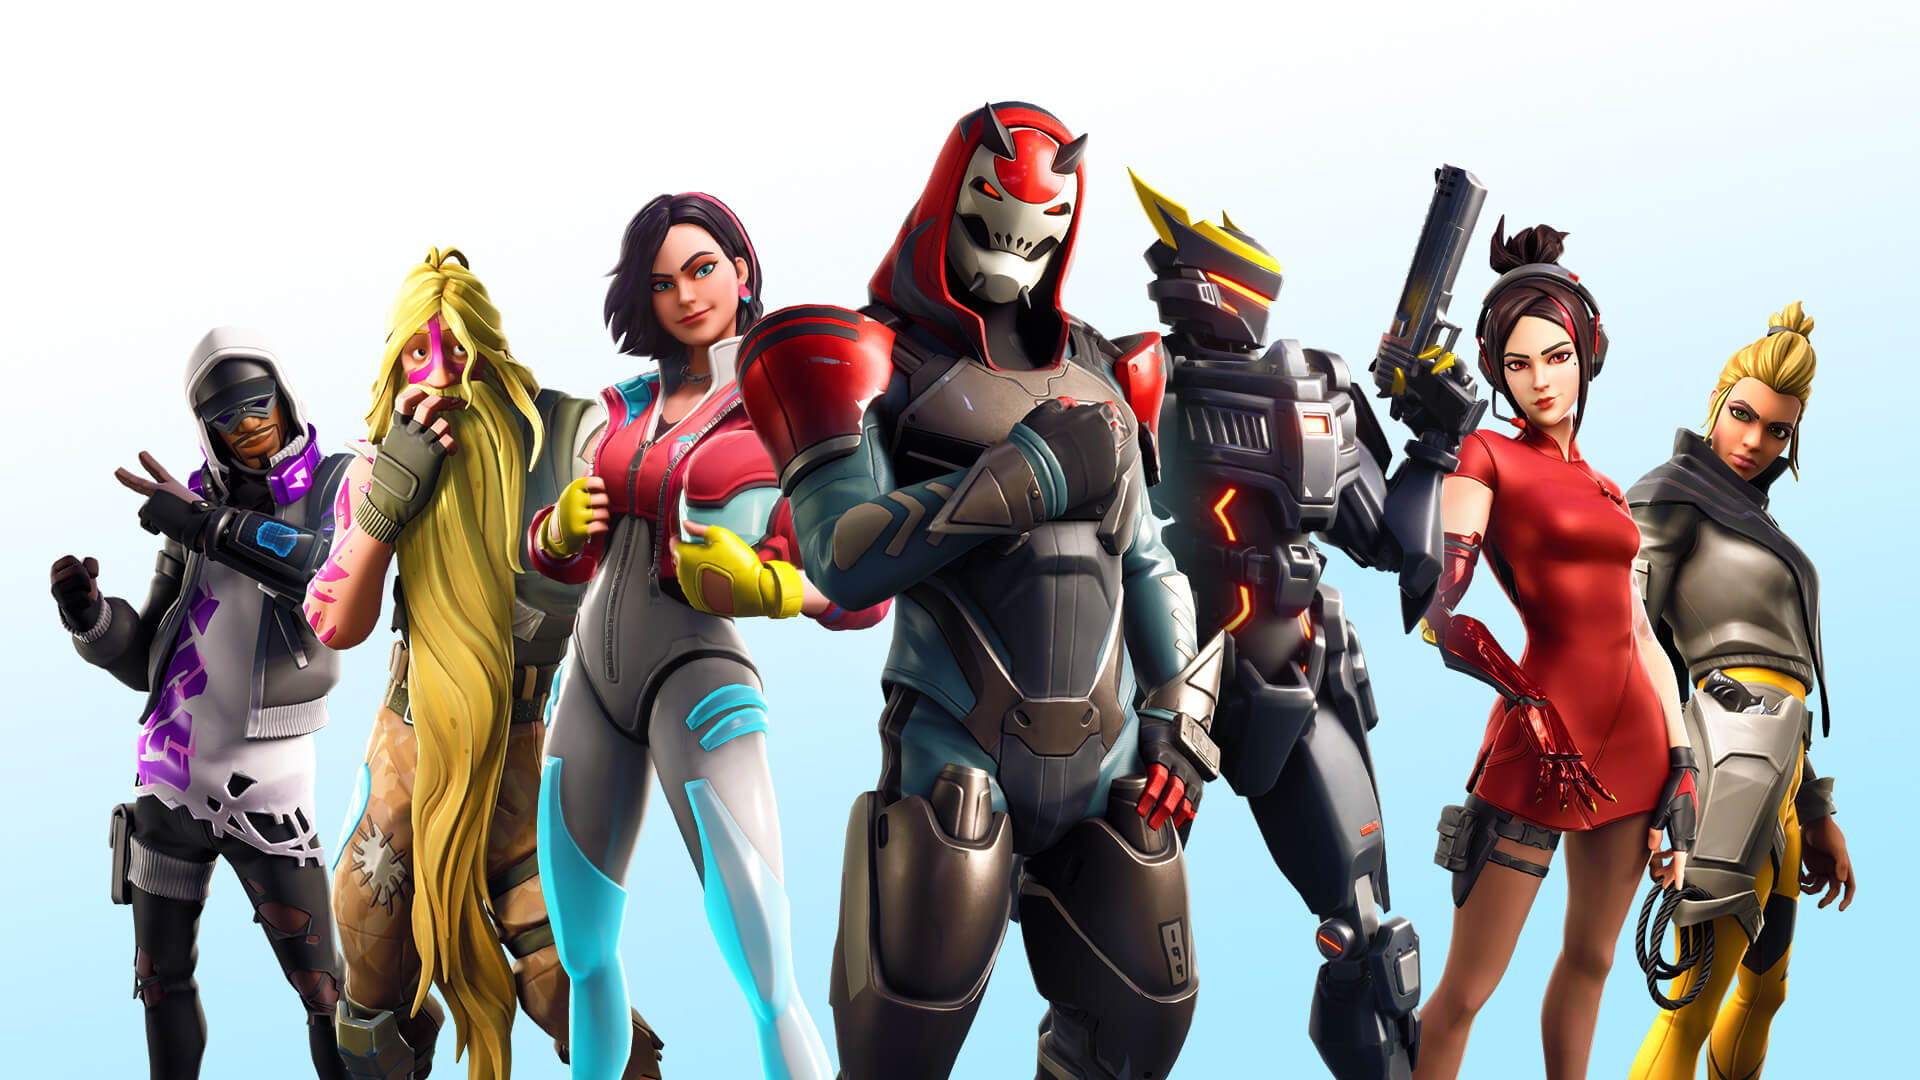 fortnite patch notes 6.1 epic